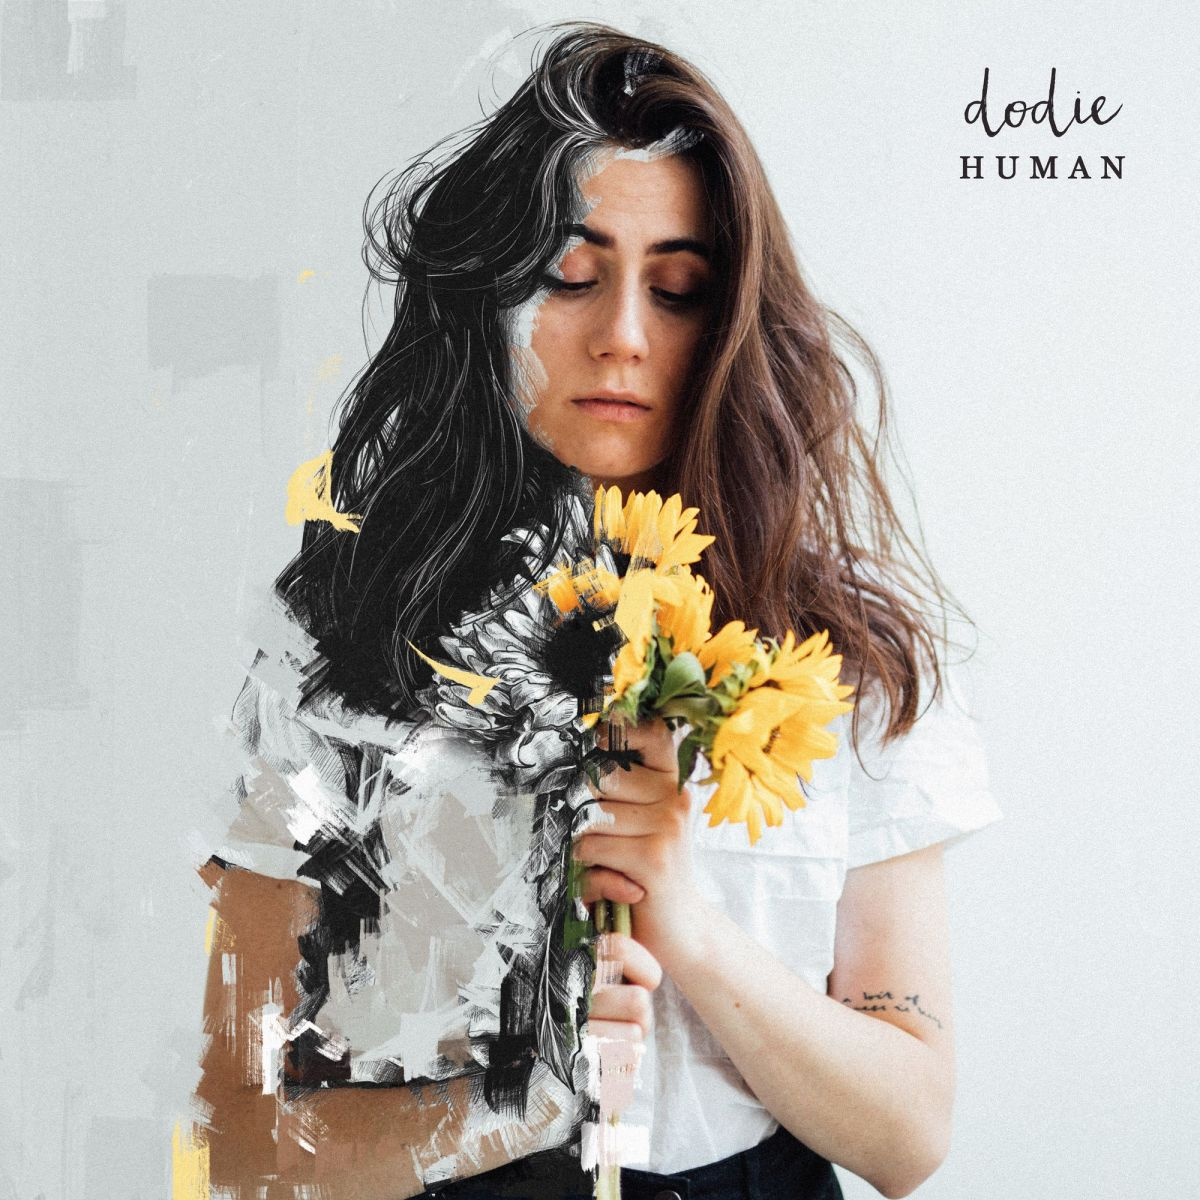 Dodie-Human-EP Review